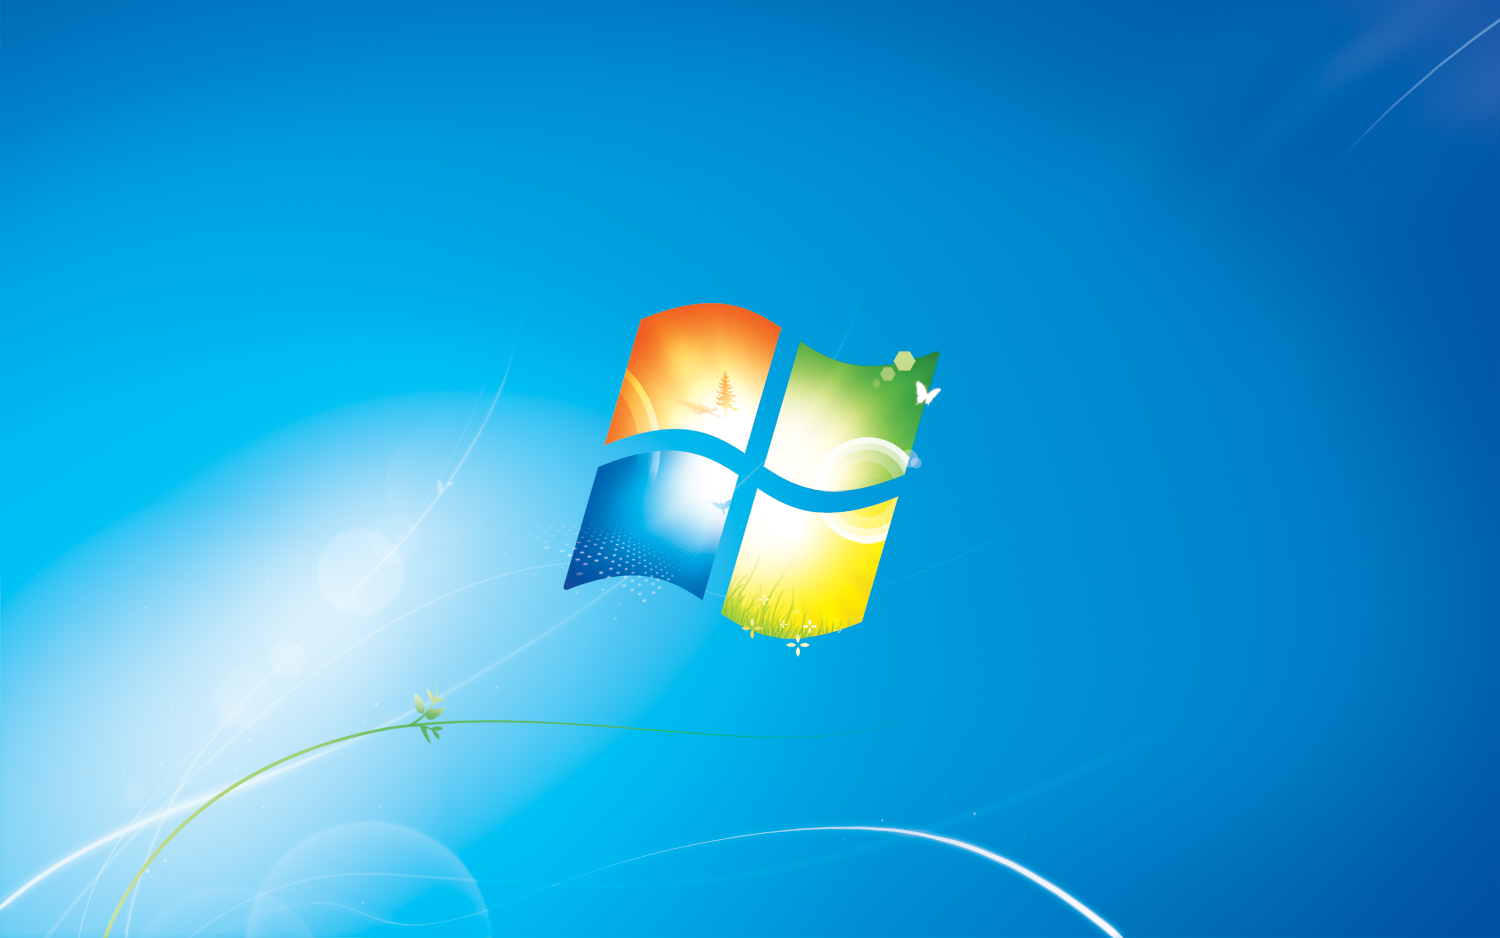 How to make your windows 7 home premium faster